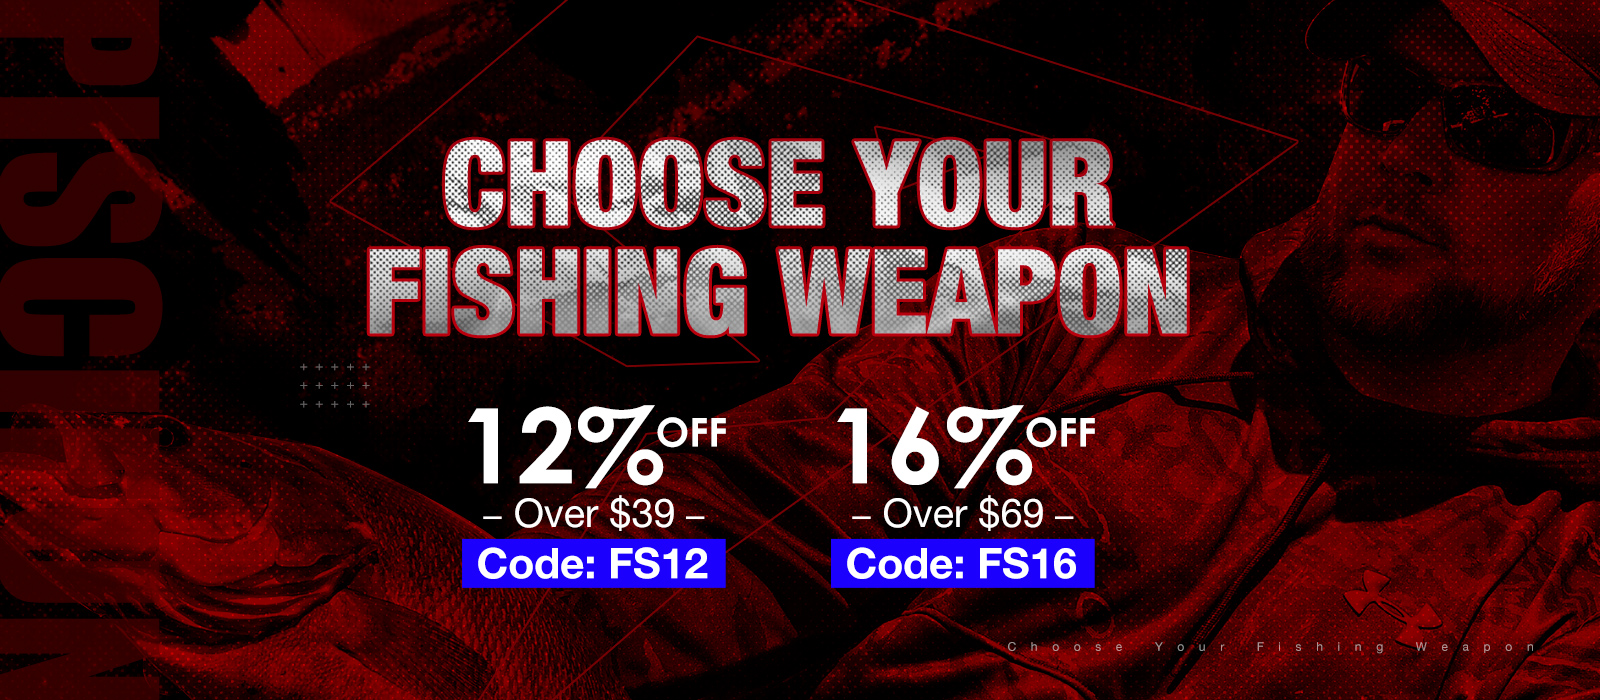 Up tp 16% off on Piscifun Fishing Gear